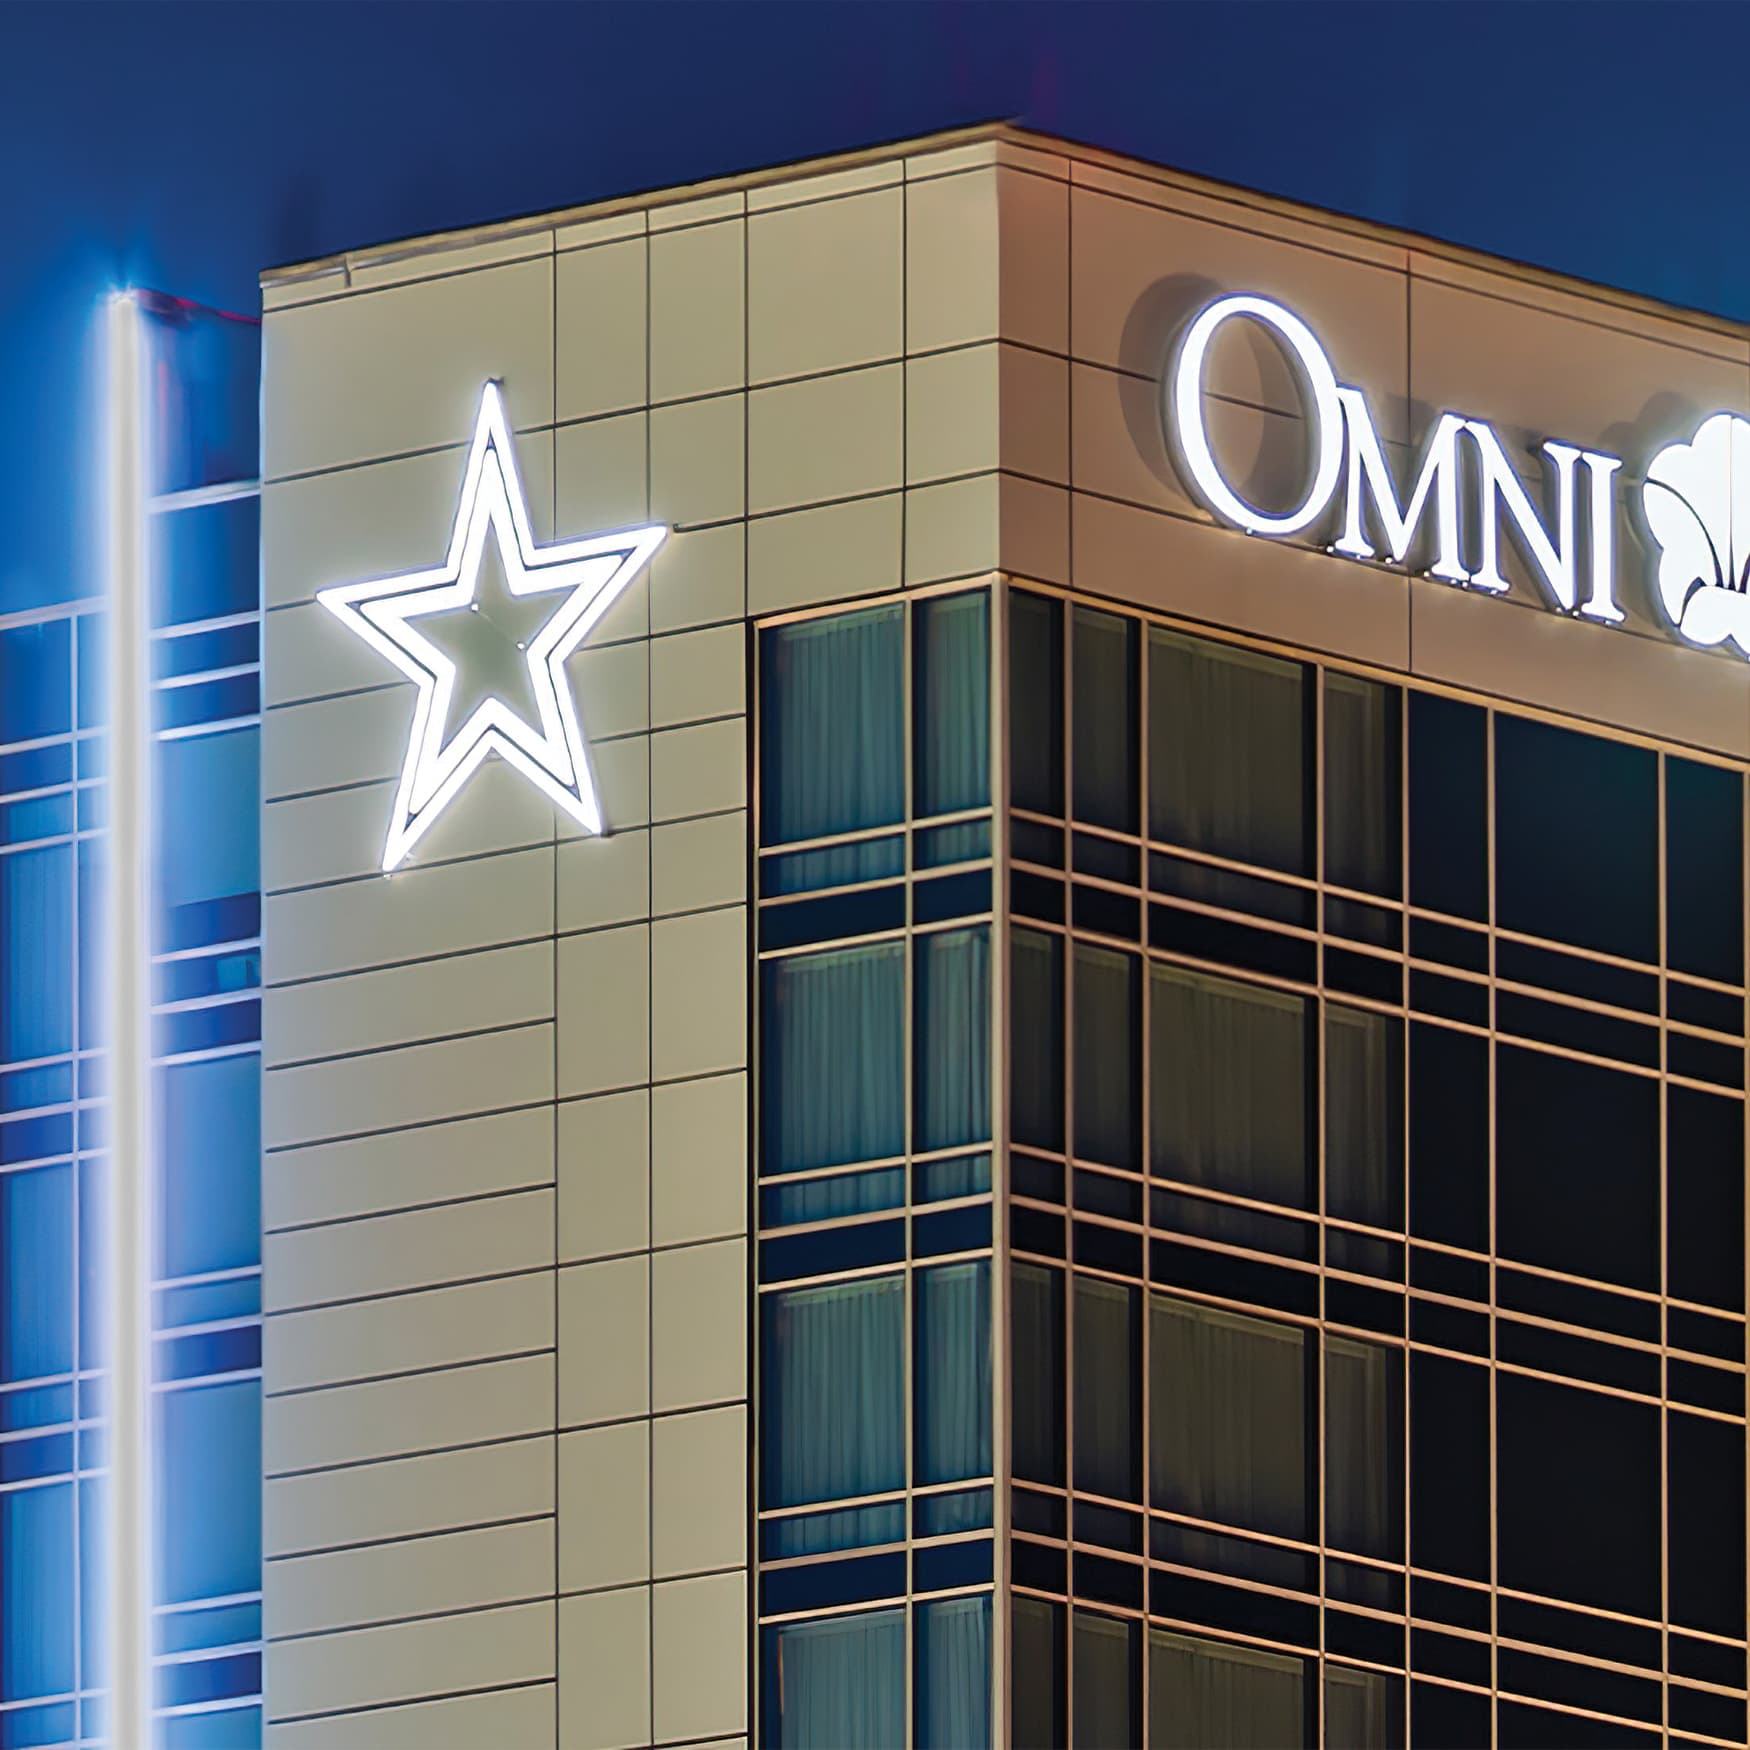 The Omni Hotel, located in Frisco, Texas, at night time with illuminated signage.